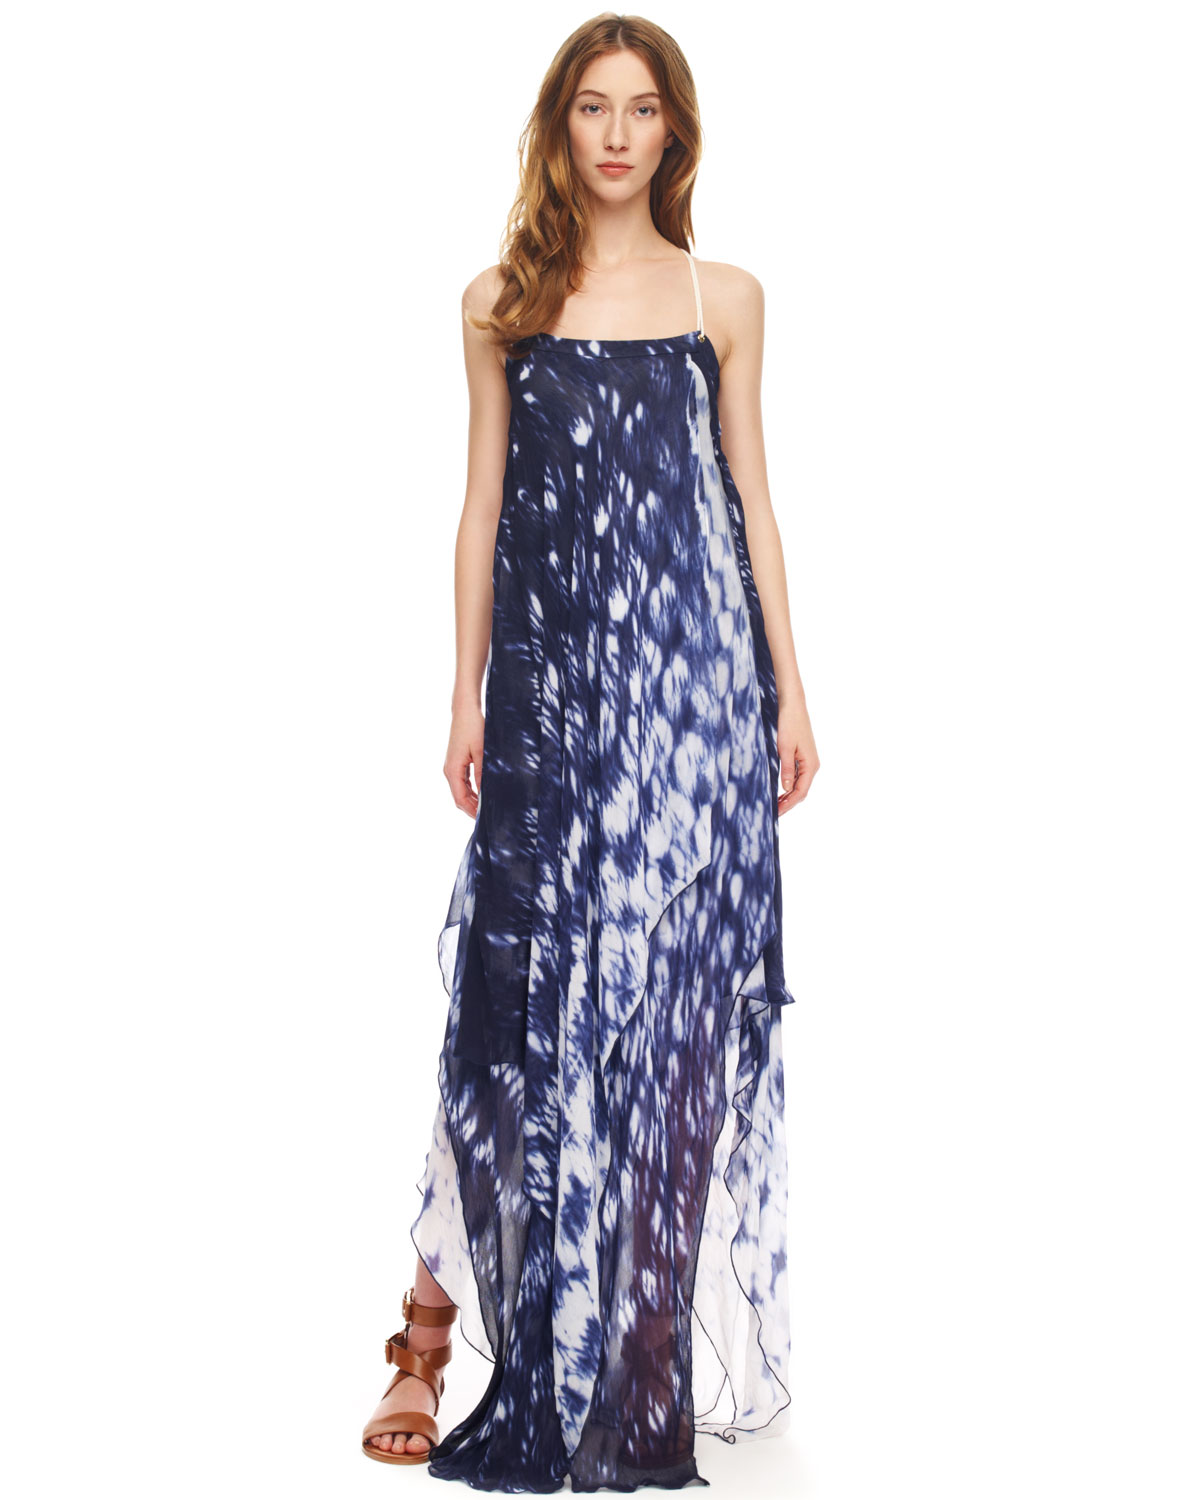 Lyst - MICHAEL Michael Kors Printed Layered Maxi Dress in Blue